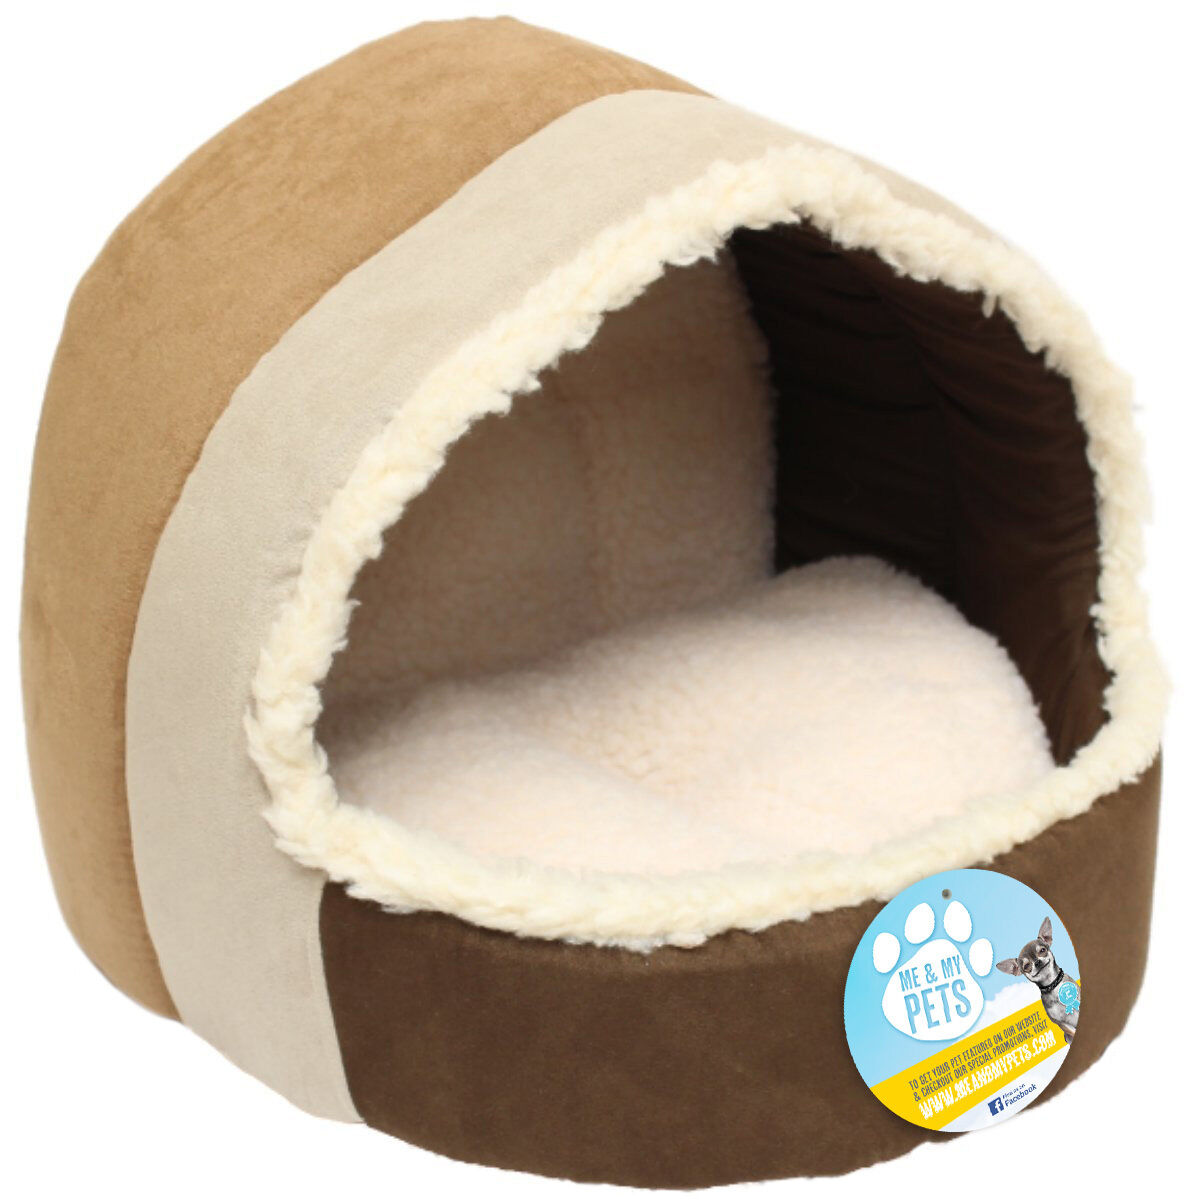 Fluffy Soft Cat Bed/puppy Bed/kitten Bed Igloo Cozy House Warm Comfortable Plush